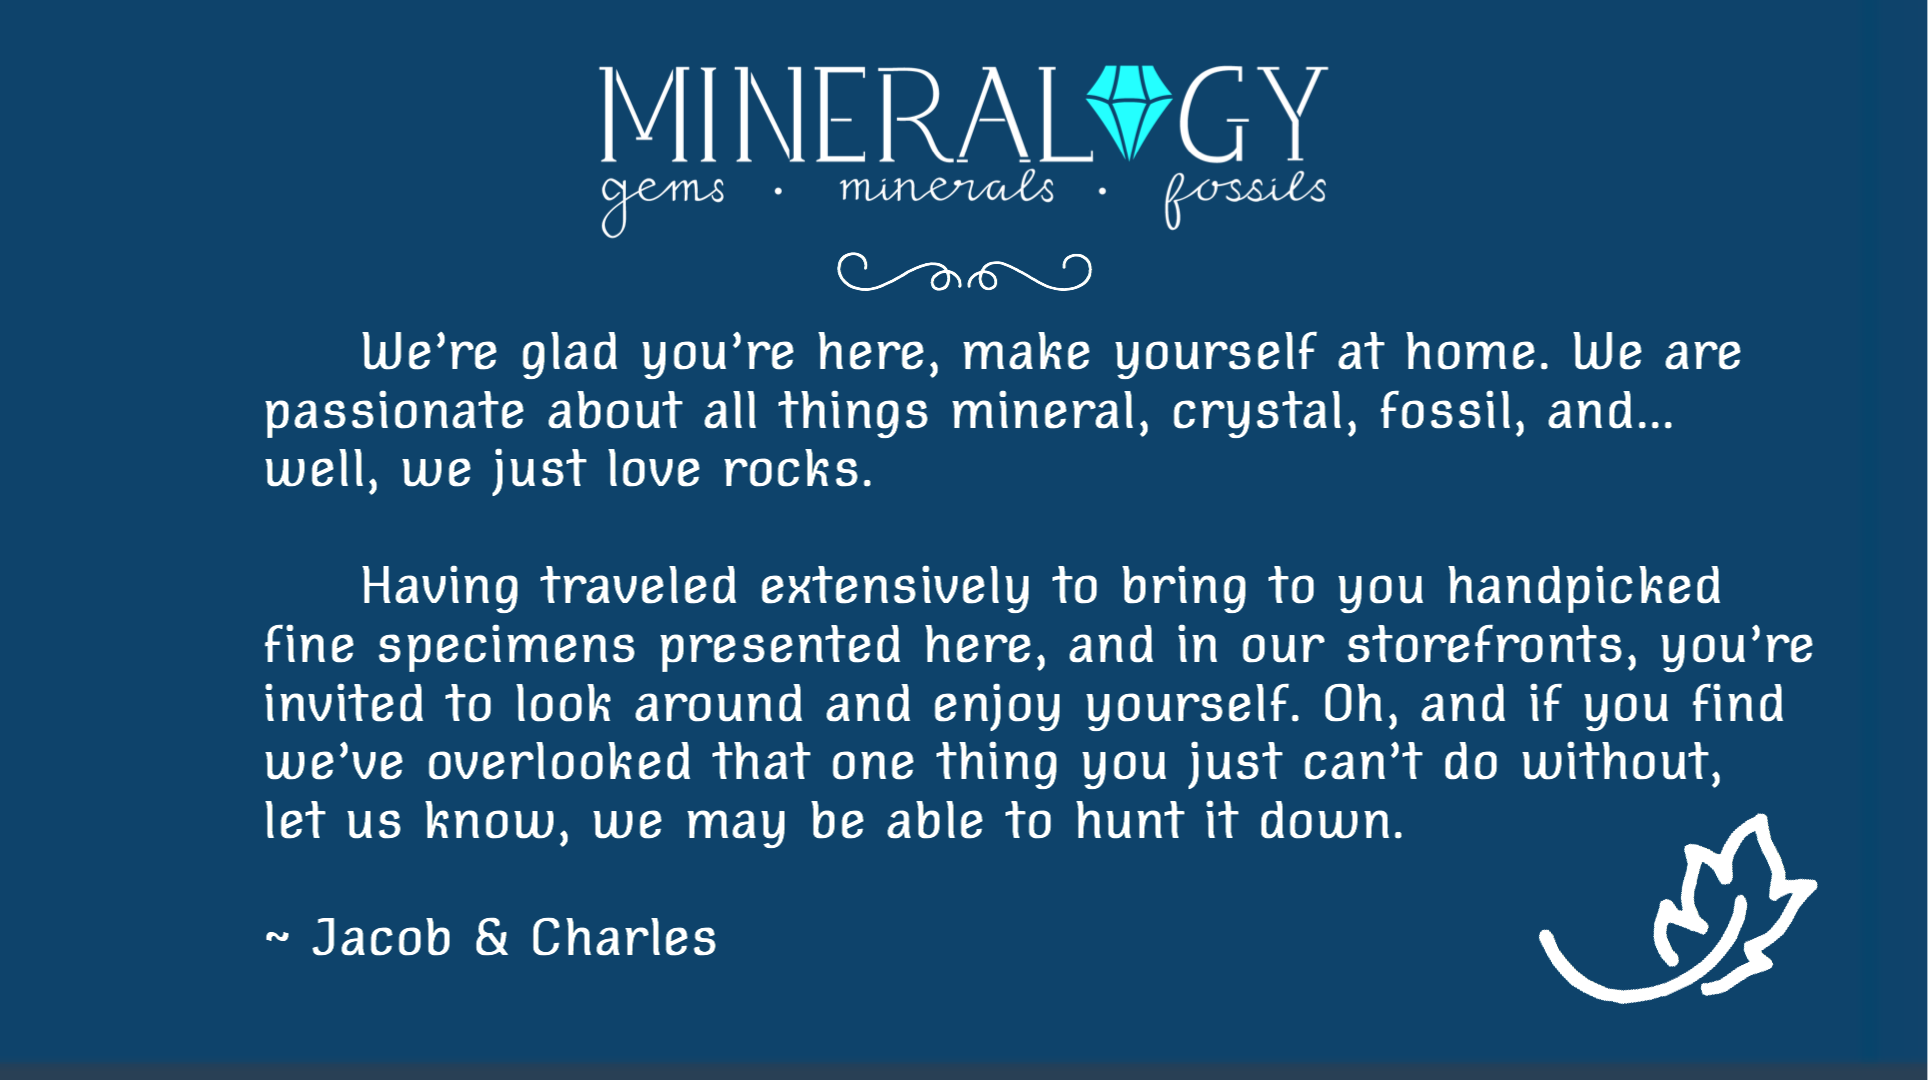 Welcome To Mineralogy!